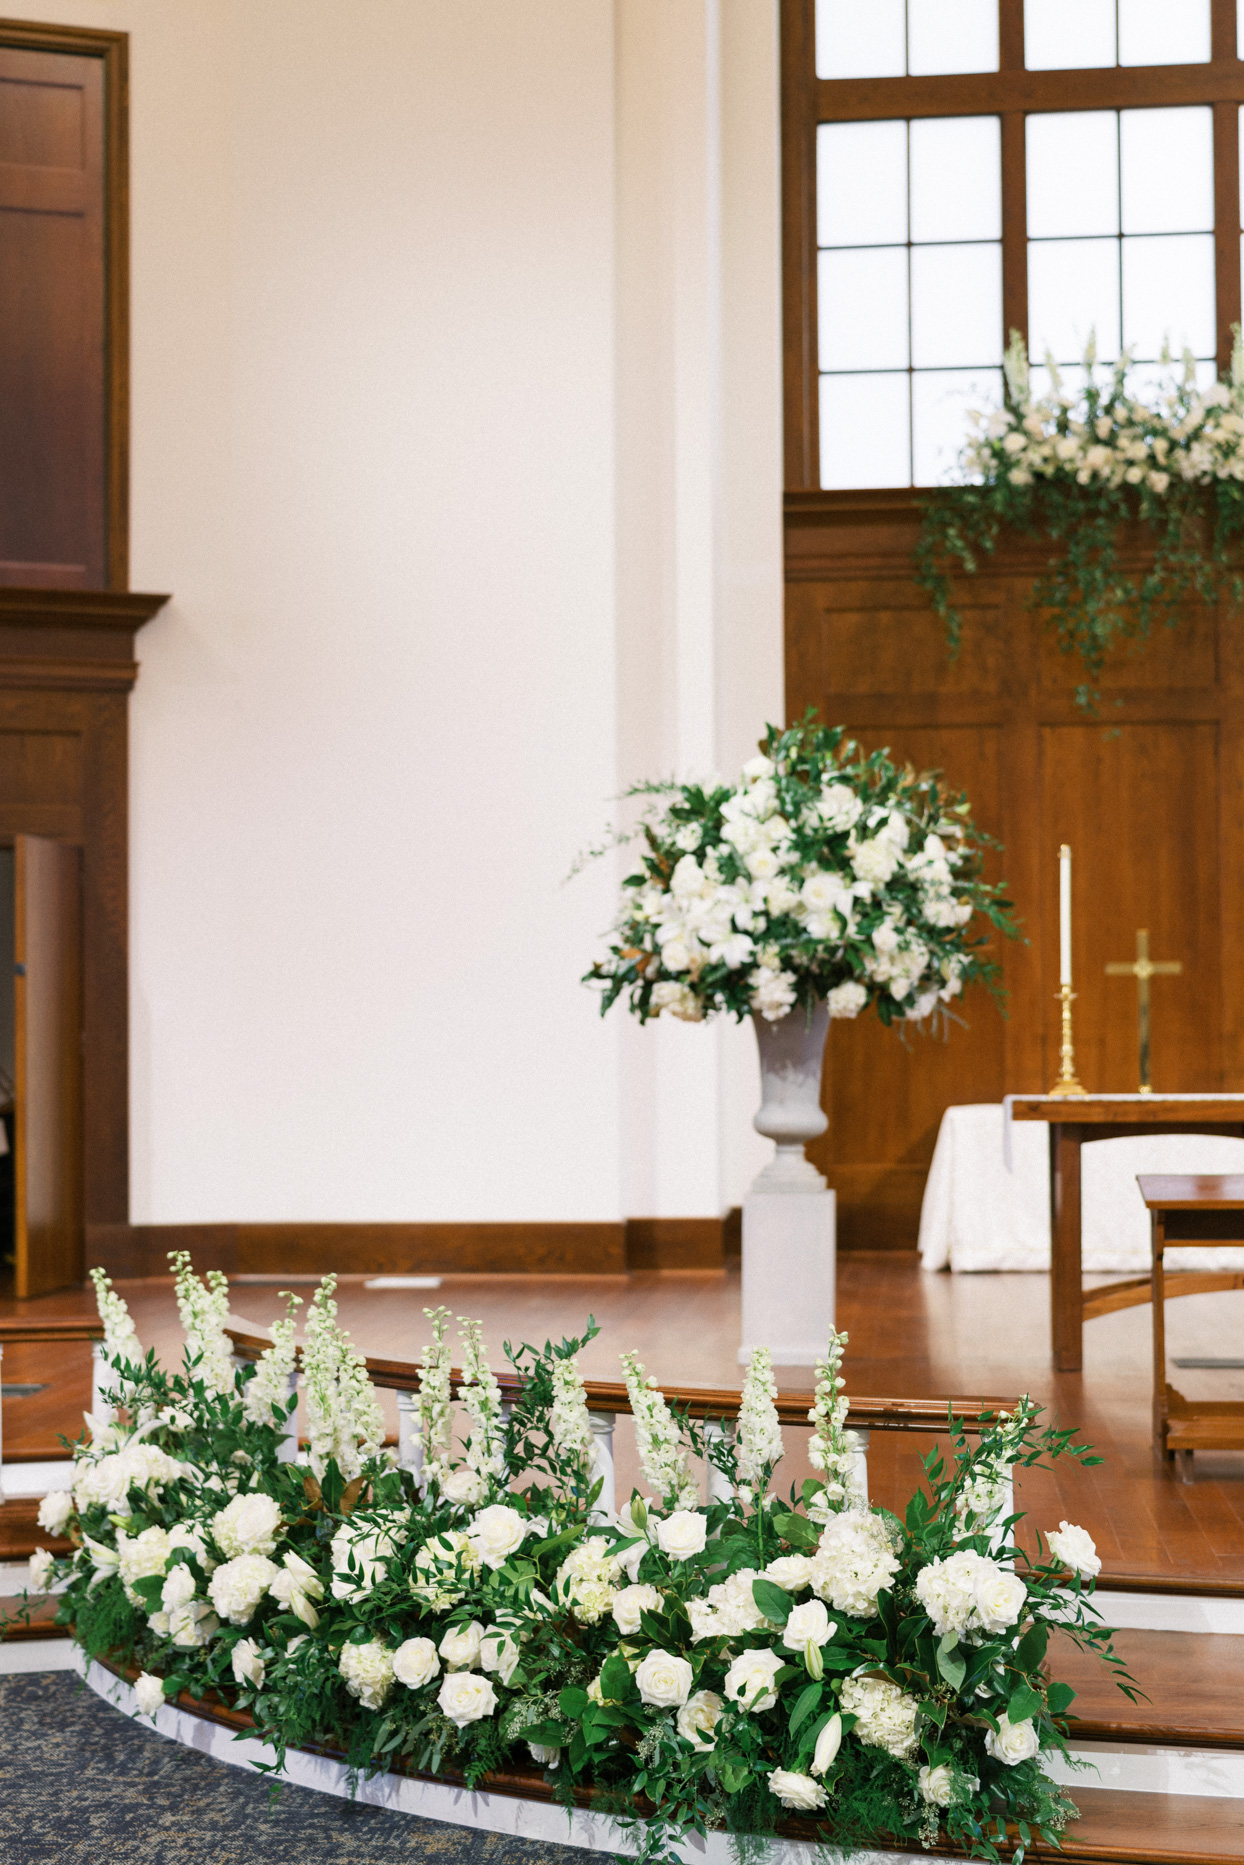 white florals decorating church for indoor wedding